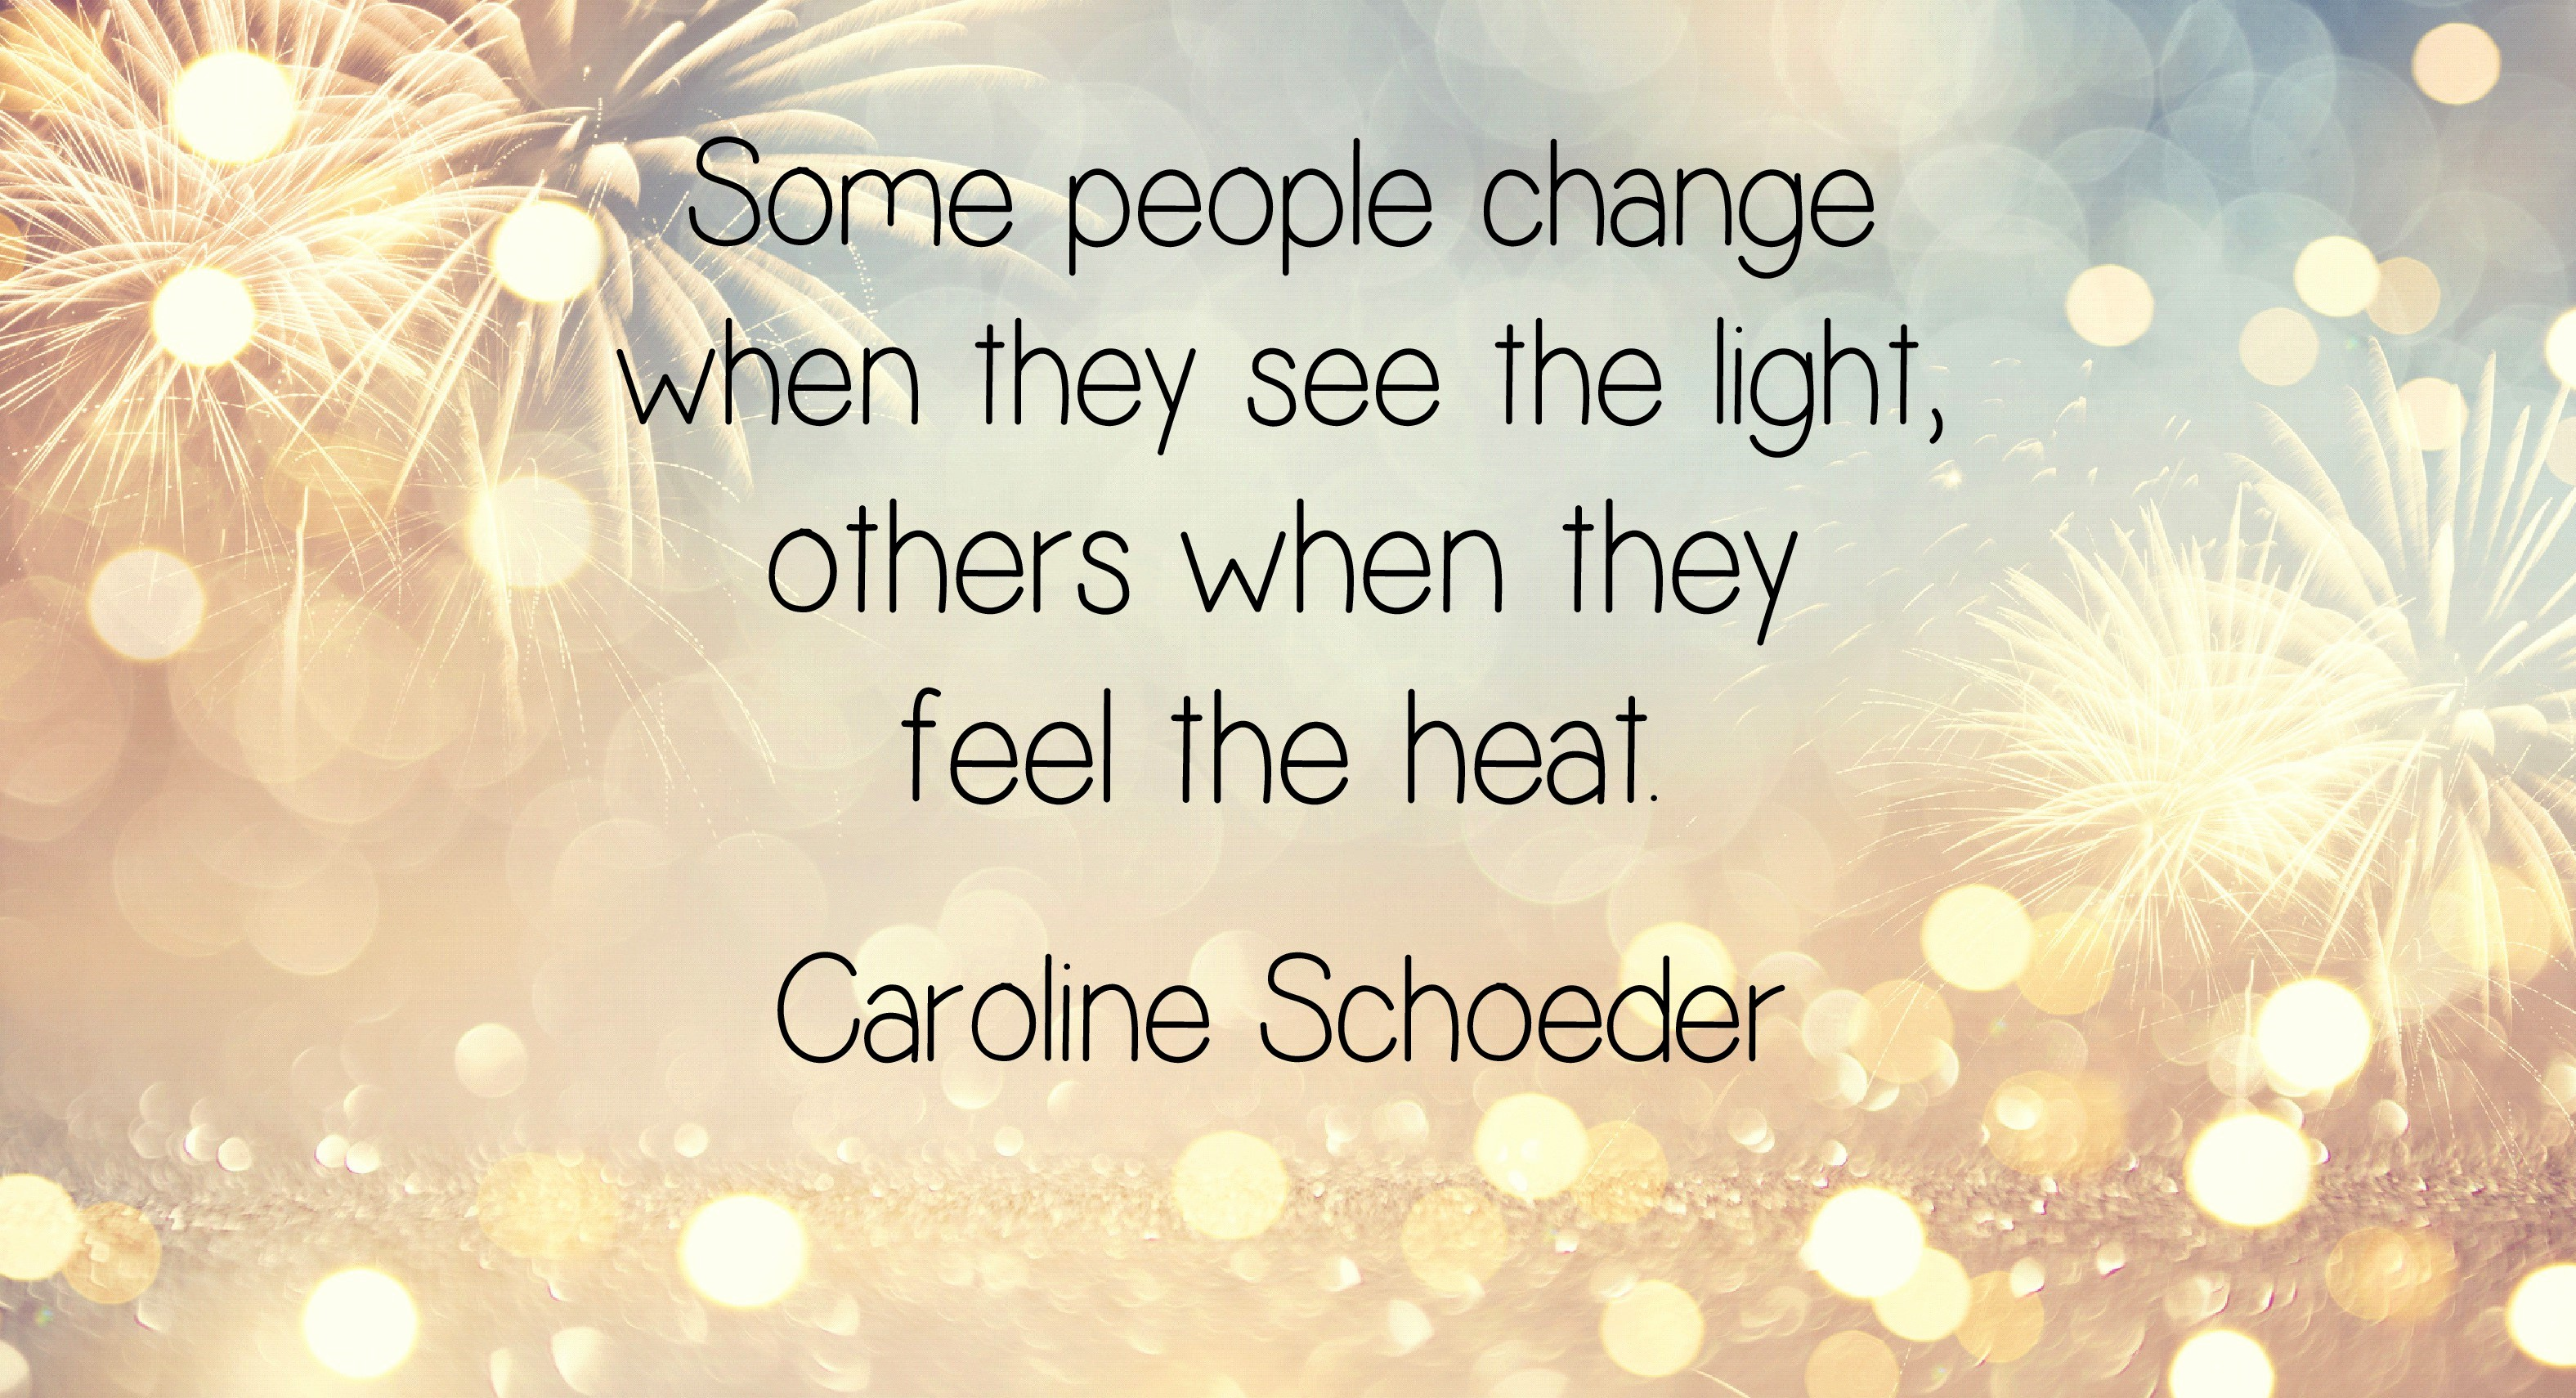 Some people change when they see the light